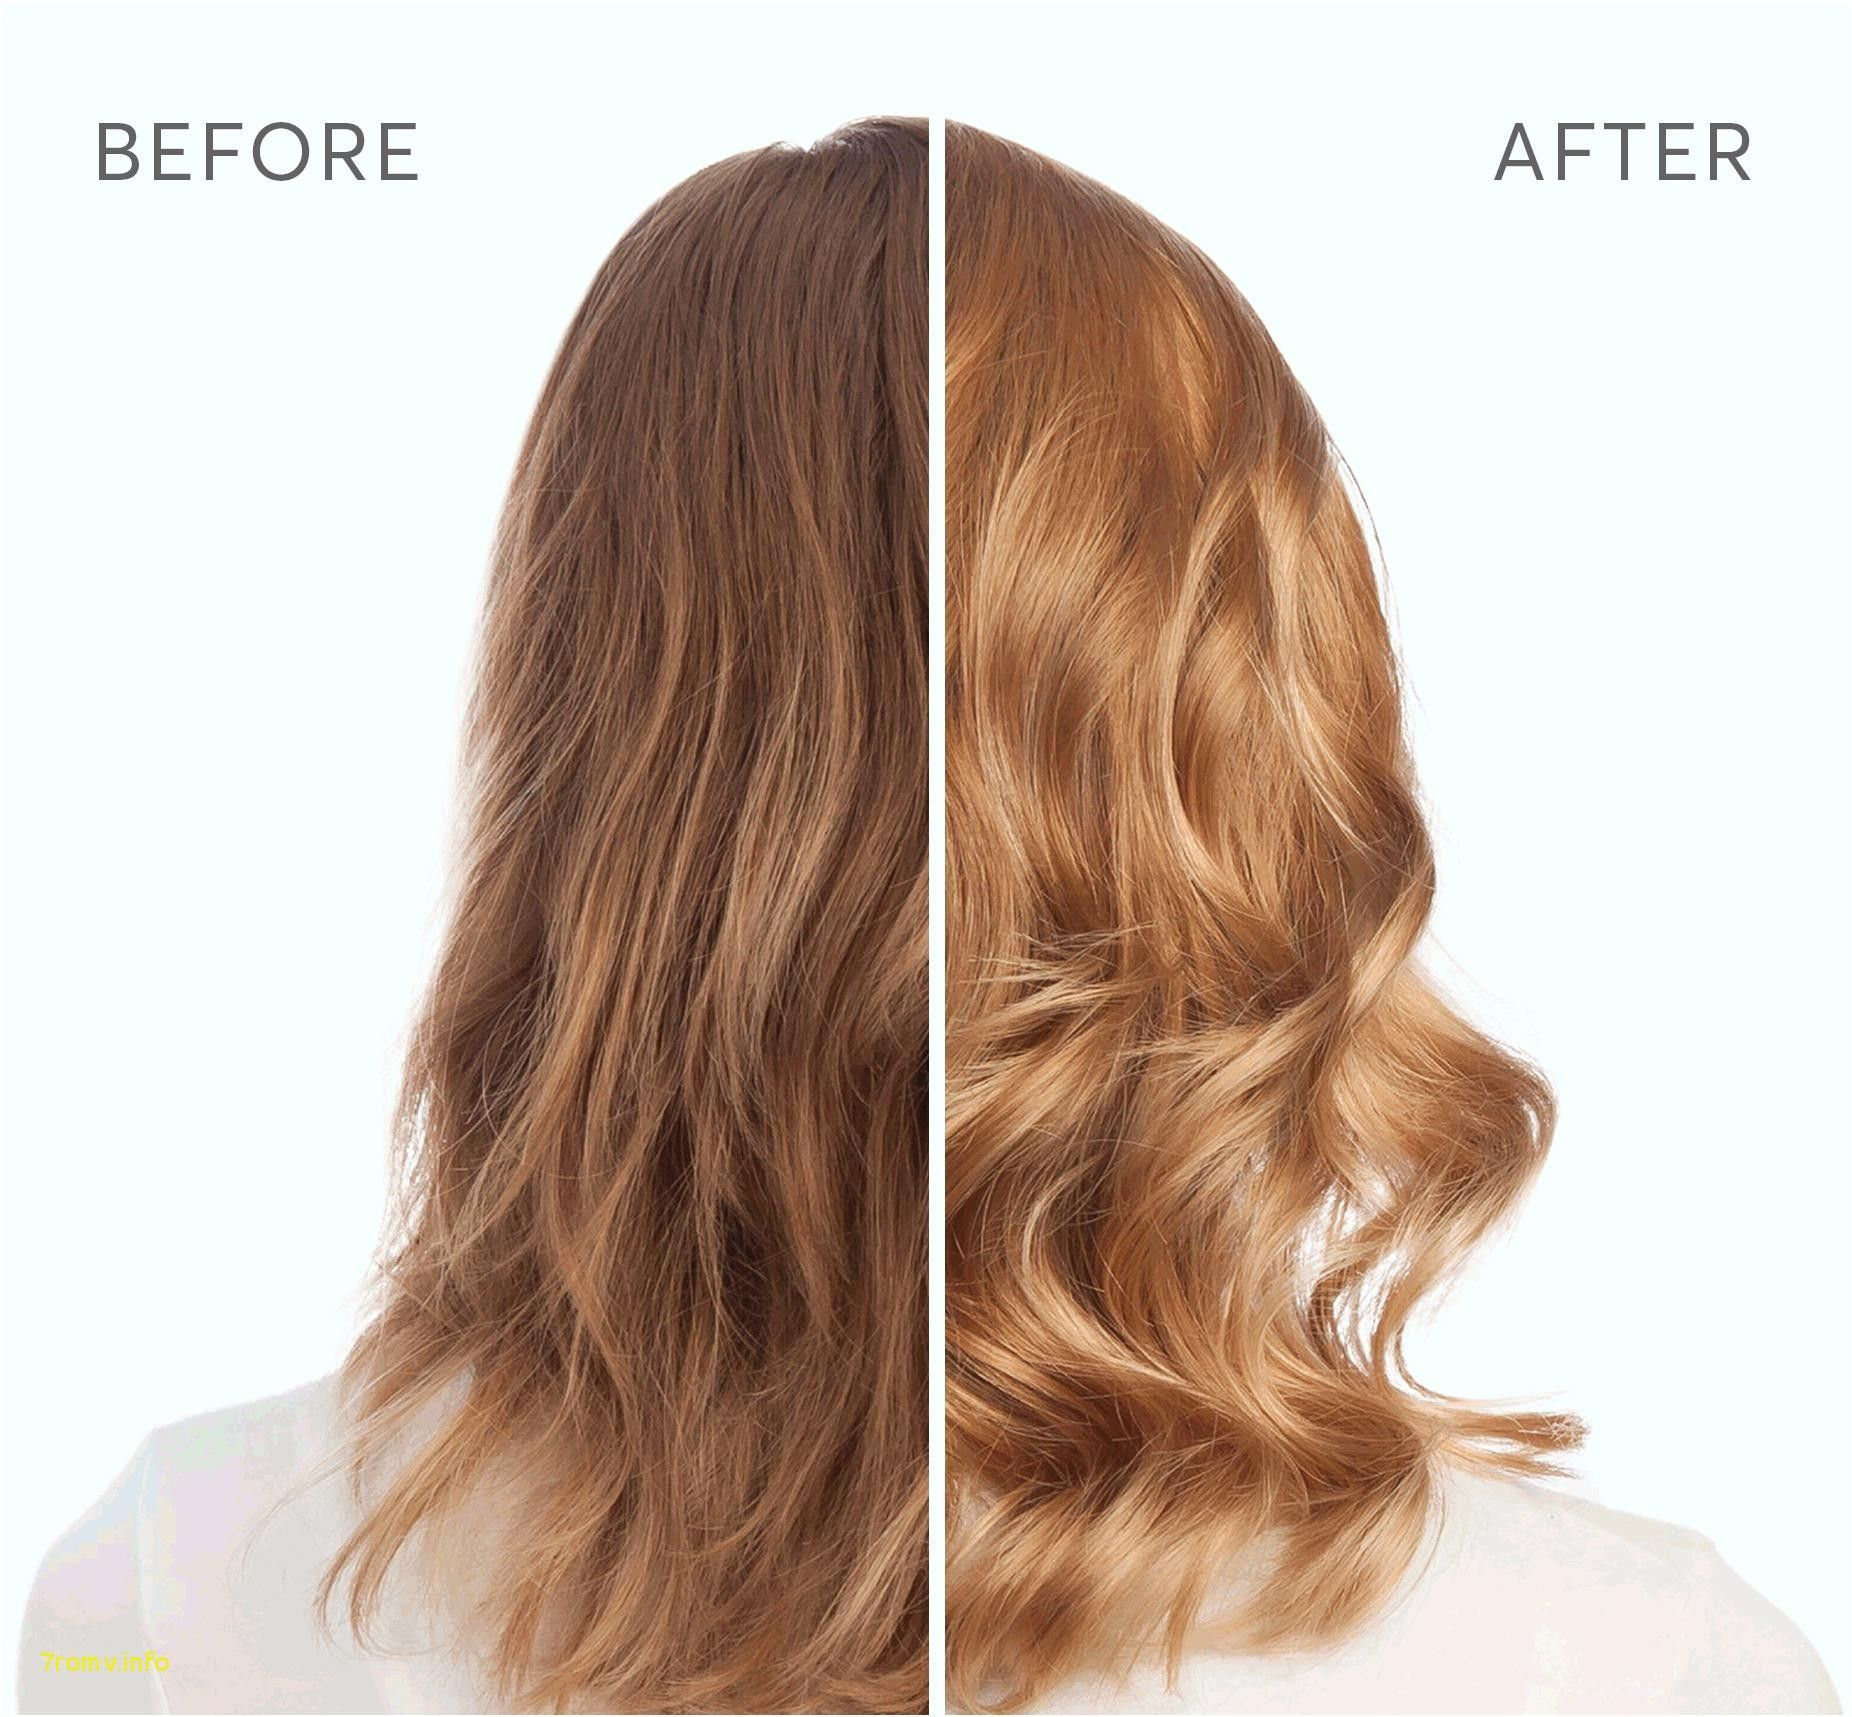 Before My Perm During And After Me Long Hair Perm Permed Hairstyles Long Hair Styles